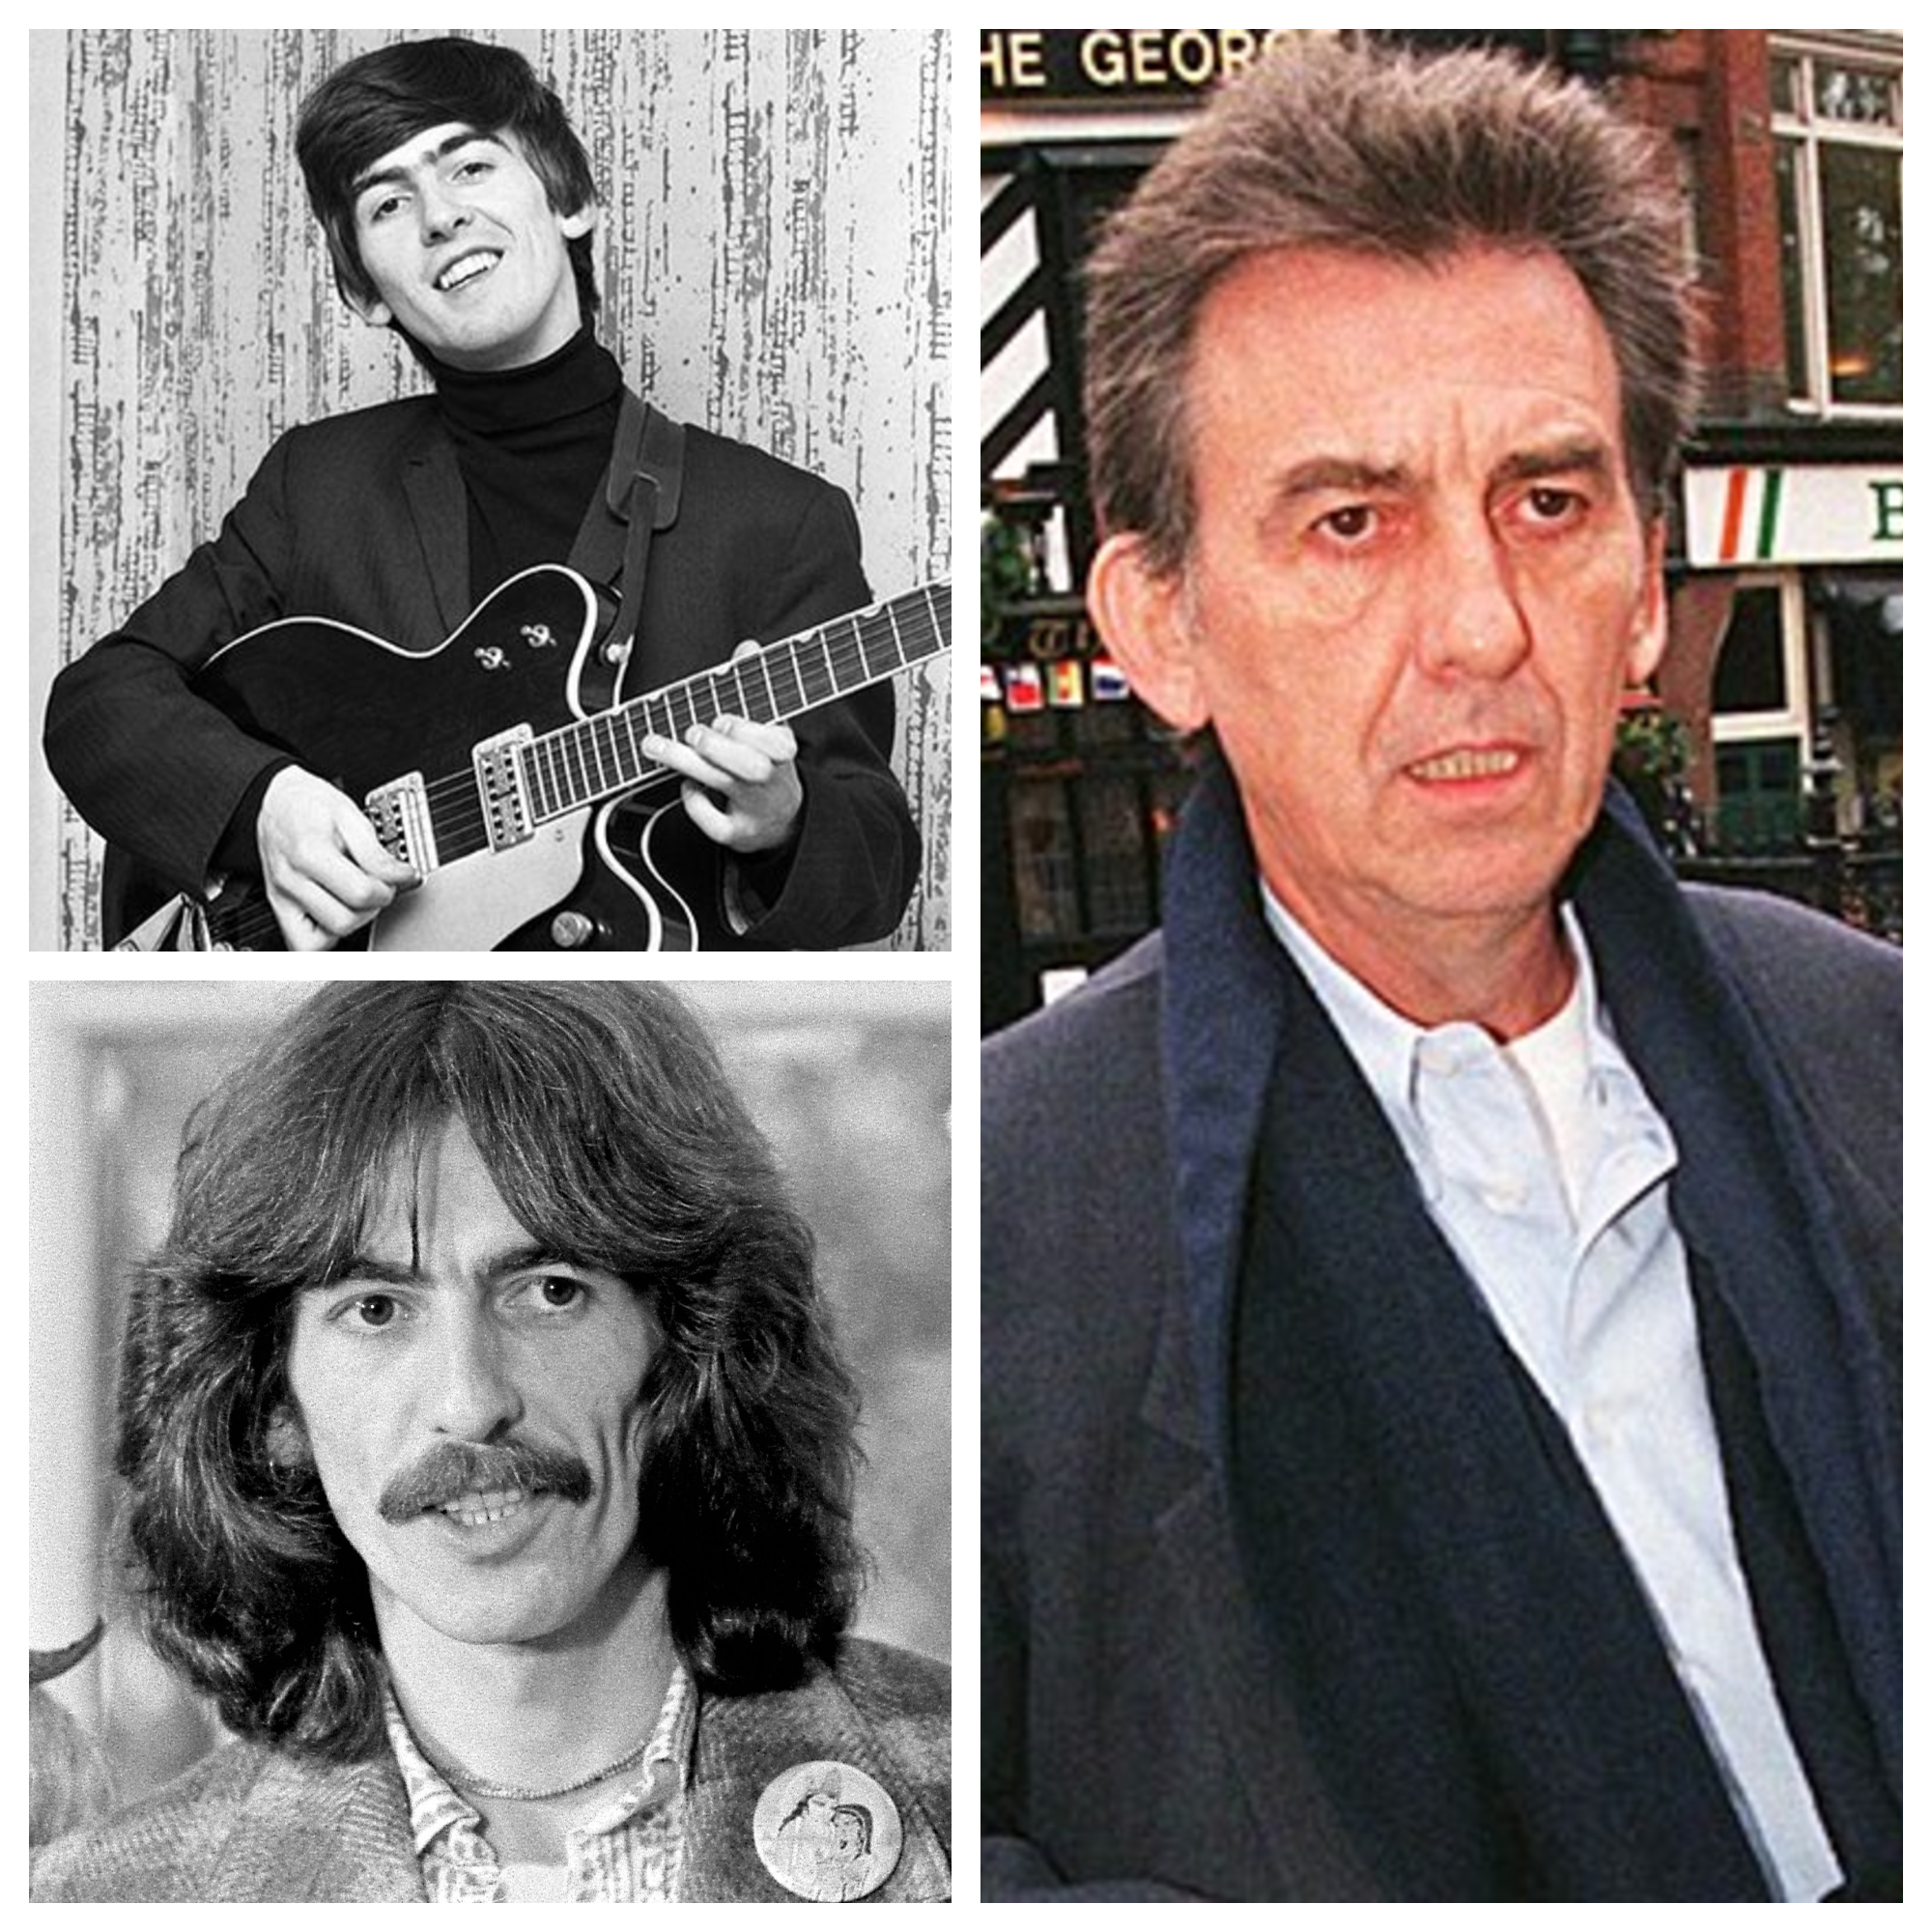 George Harrison, George Harrison Then and Now, the Beatles, The Beatles Young and Old, The Beatles Before and After, celebs, Music